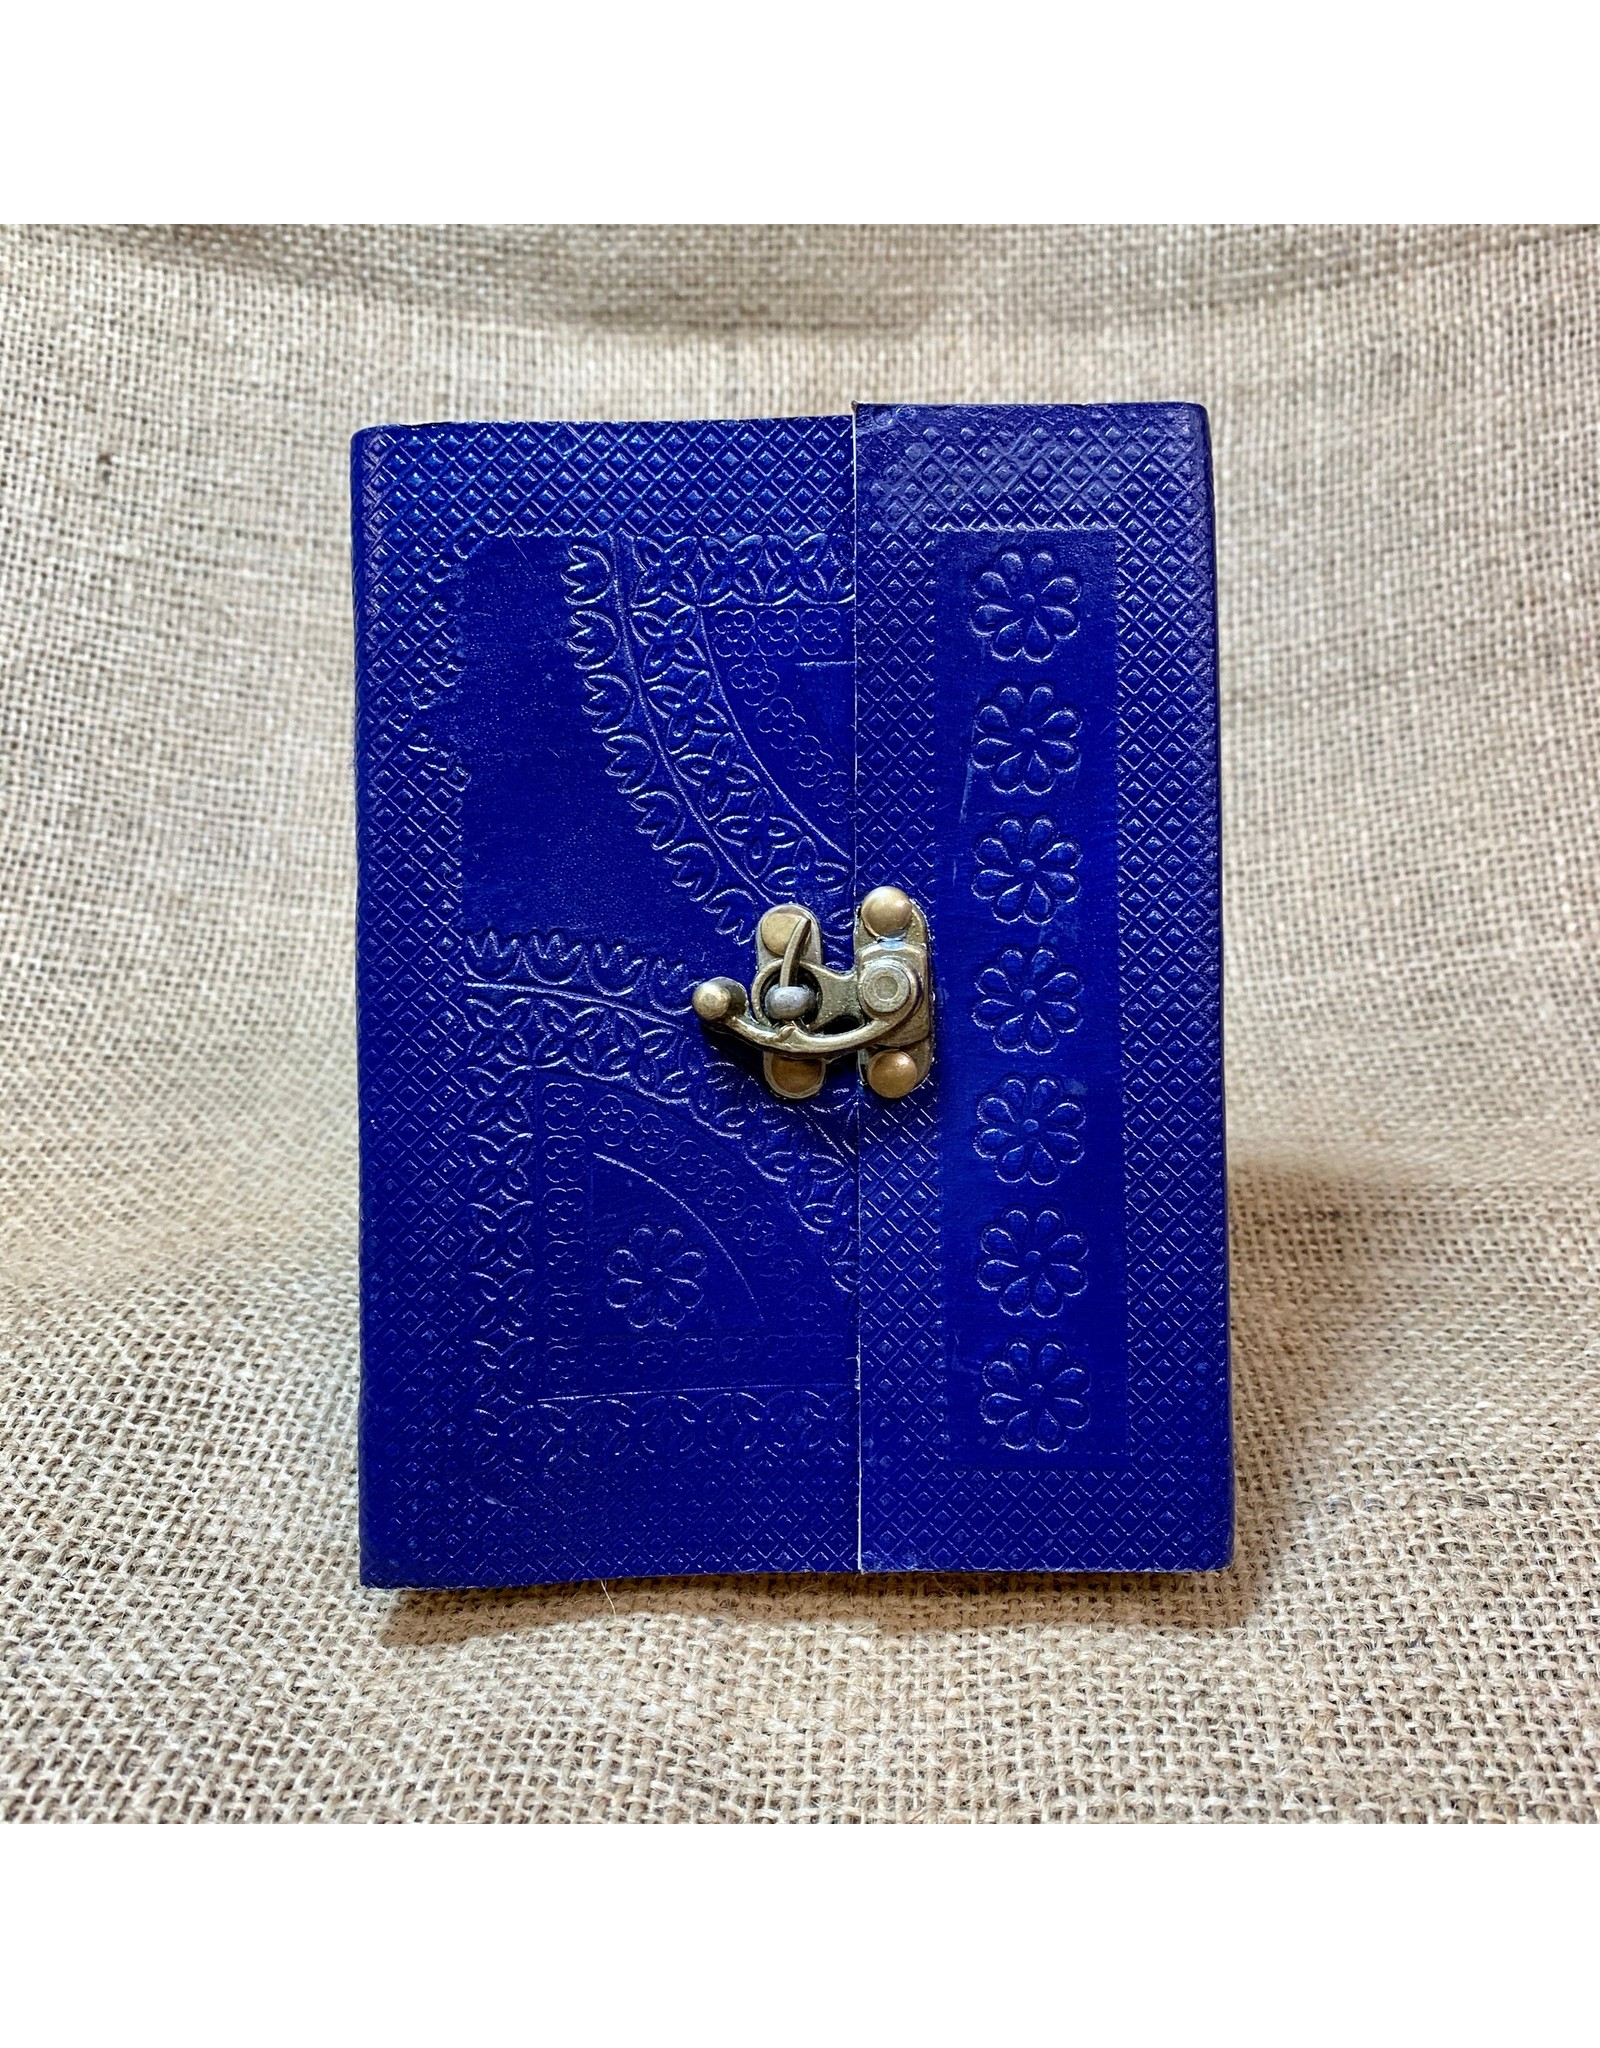 Ten Thousand Villages Blue Beauty Embossed Journal